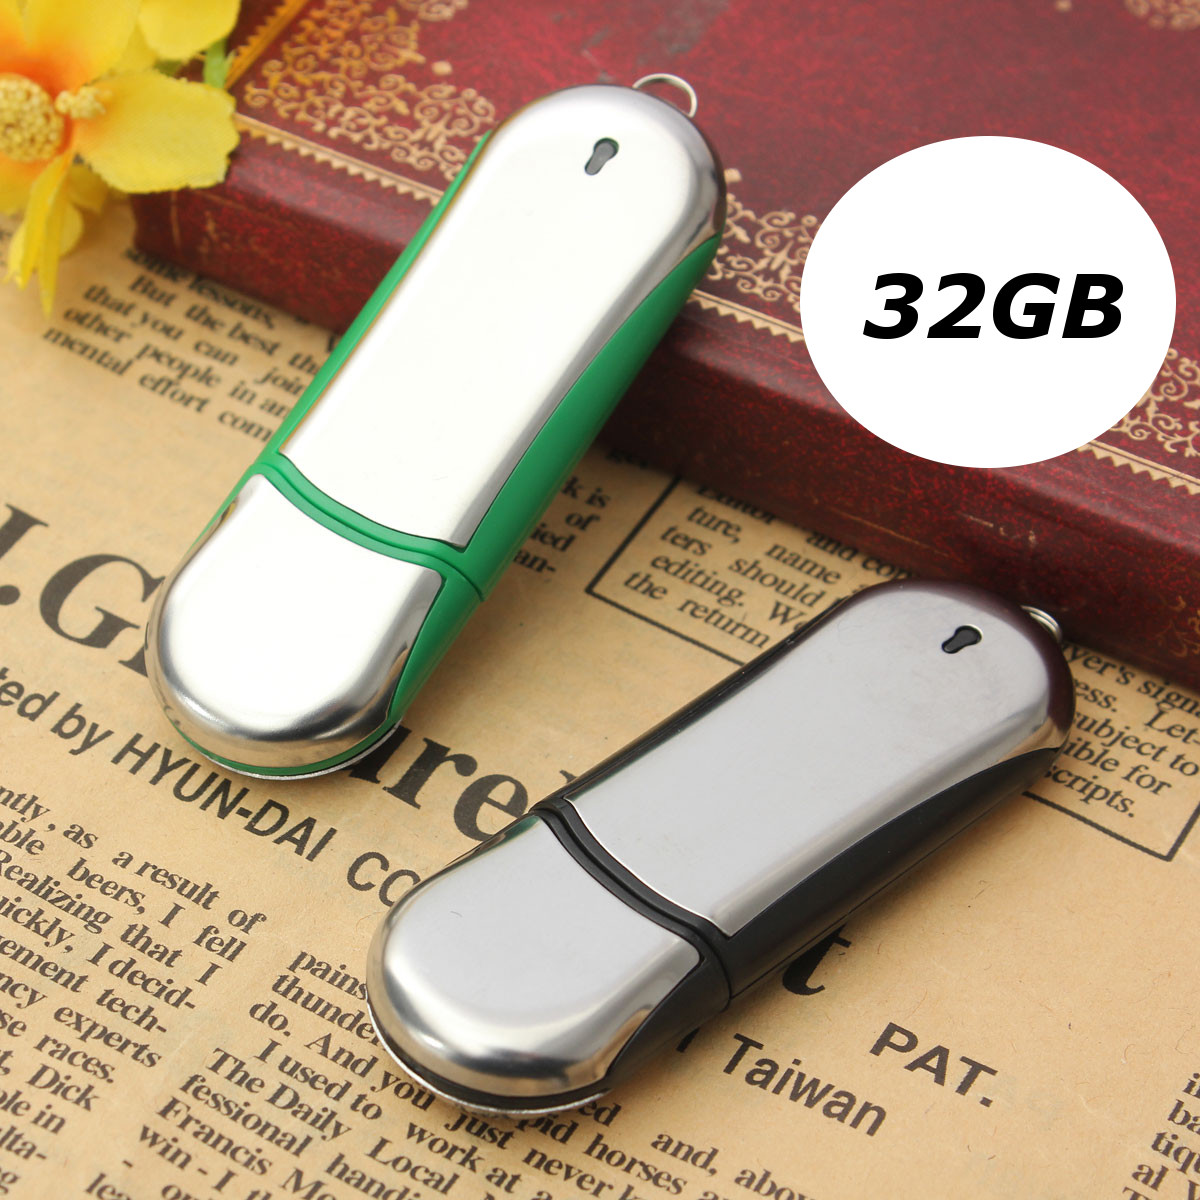 32GB USB 2.0 Flash Memory Stick Thumb Drive Storage Data Pen U Disk Gifts,Black color